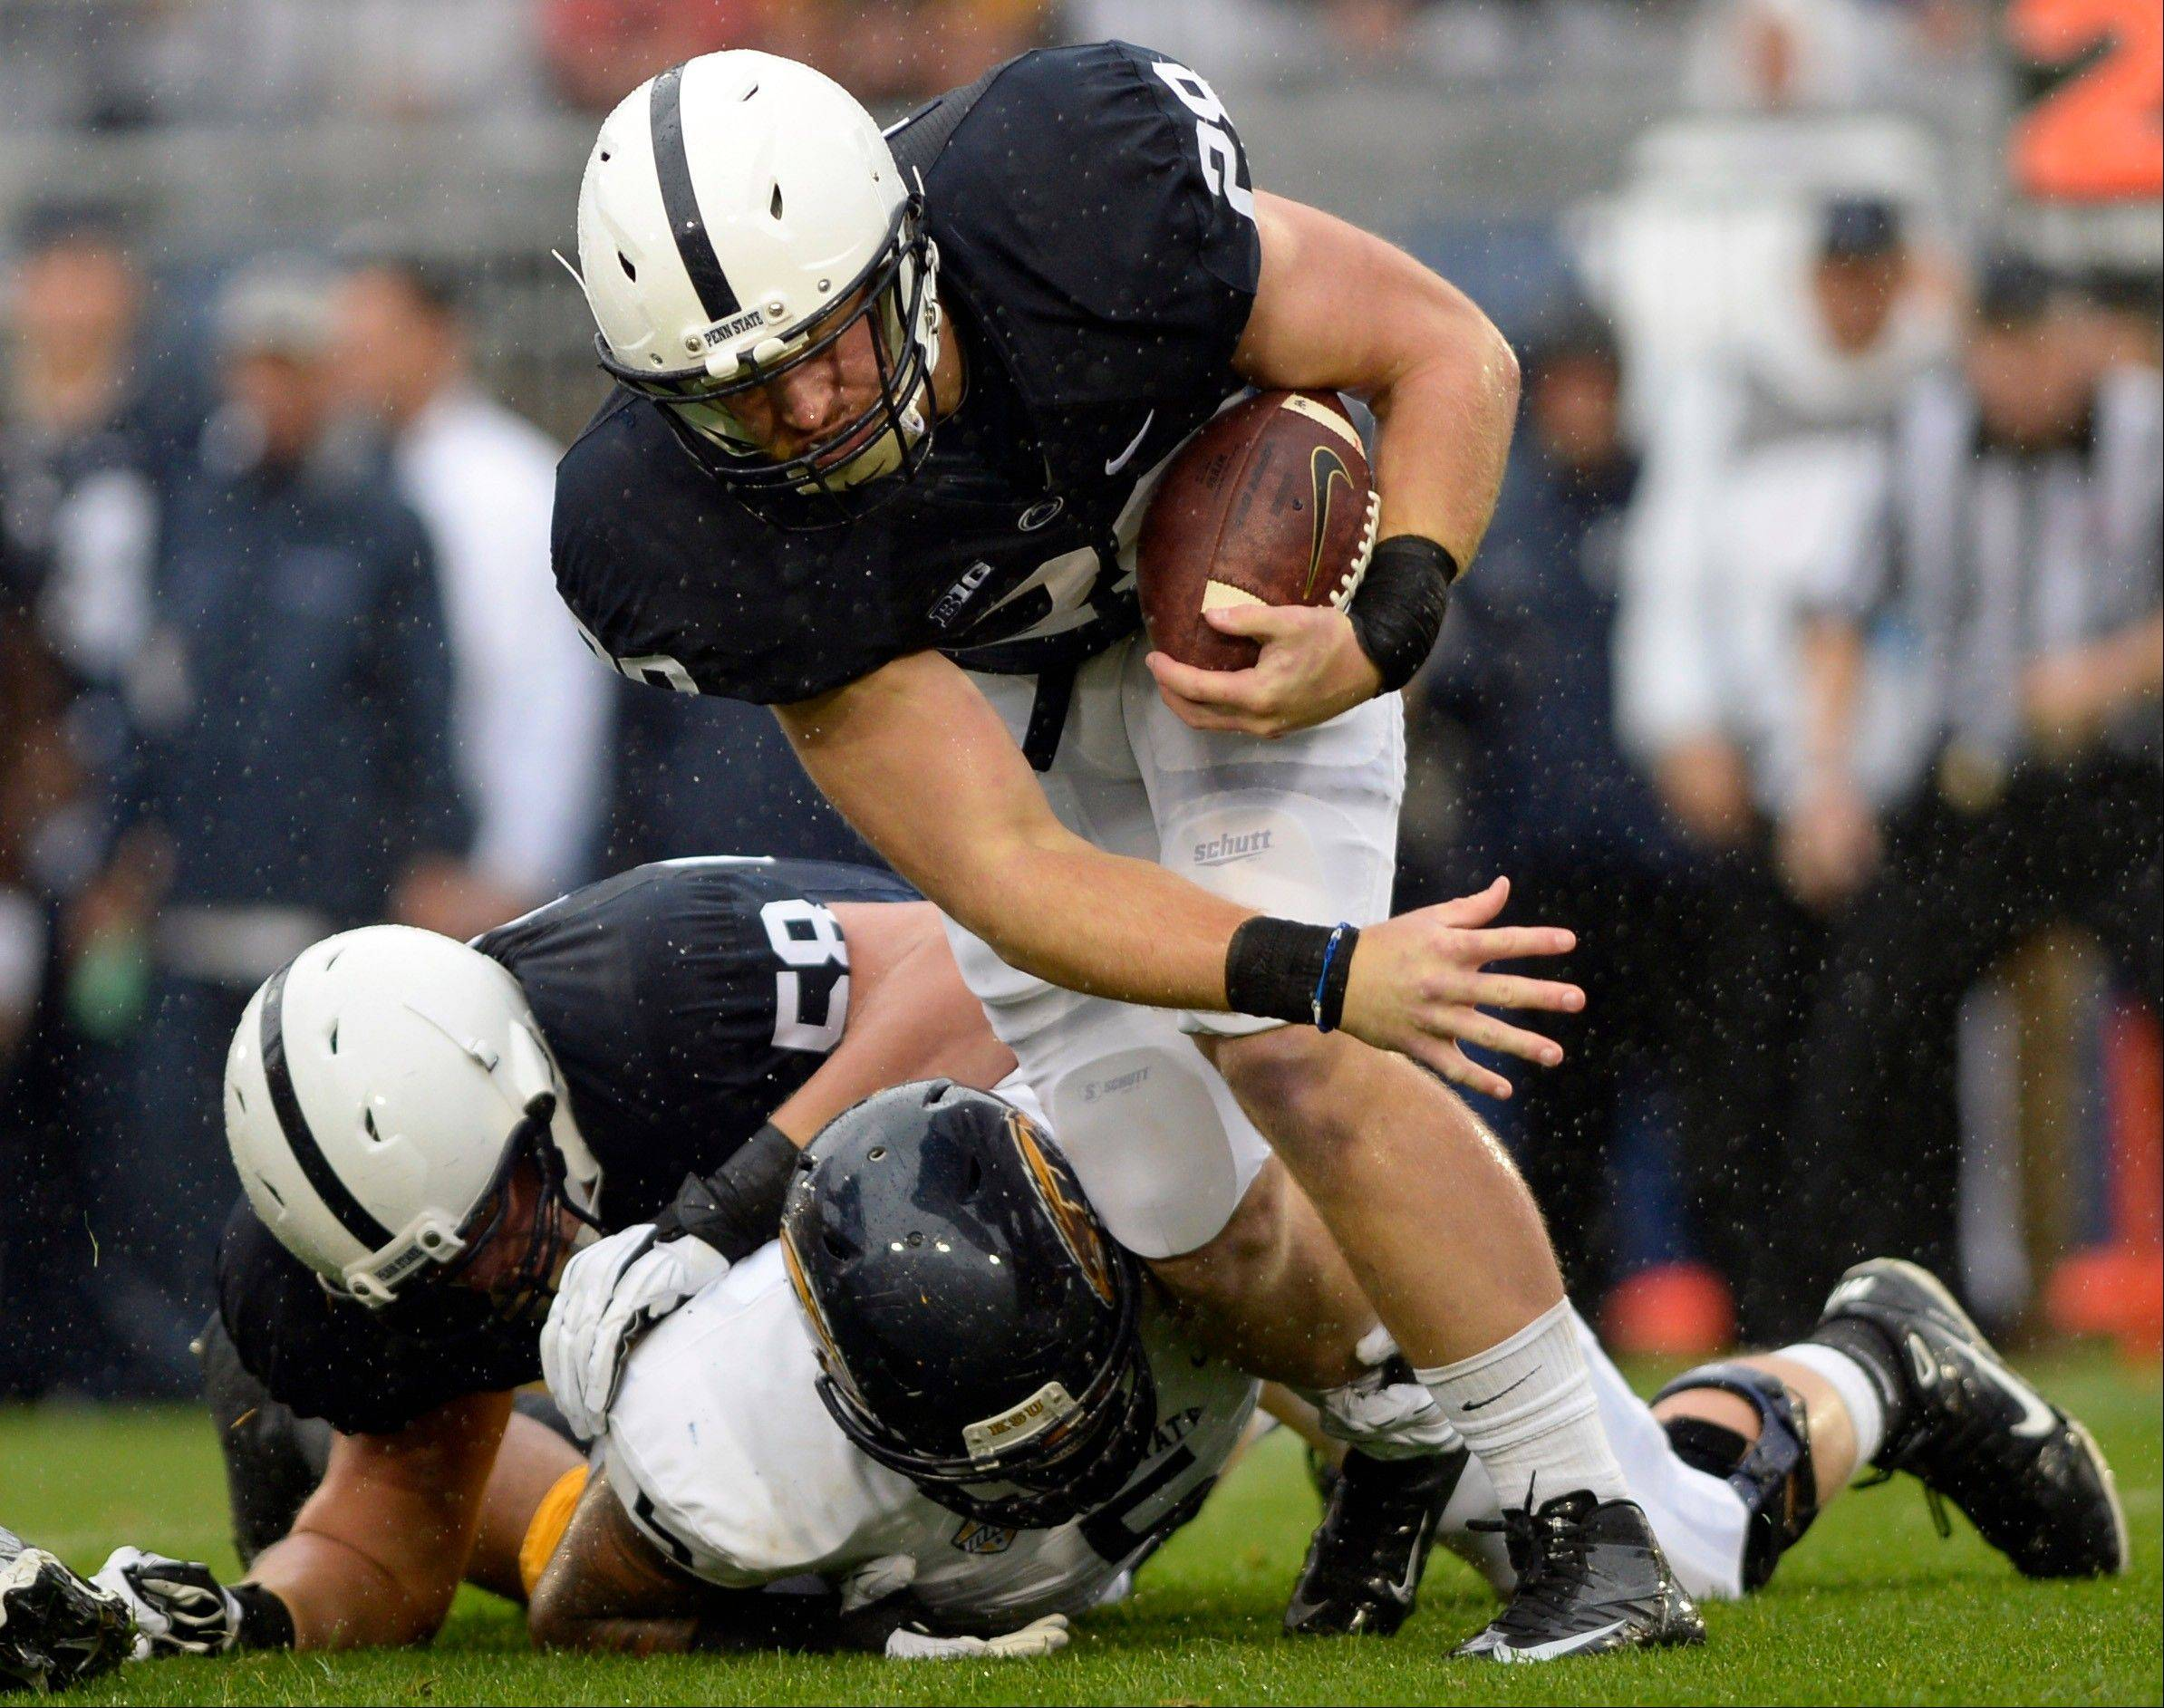 Penn State running back Zach Zwinak tries to elude Kent State defensive lineman Roosevelt Nix in the first half of Saturday�s game in State College, Pa.